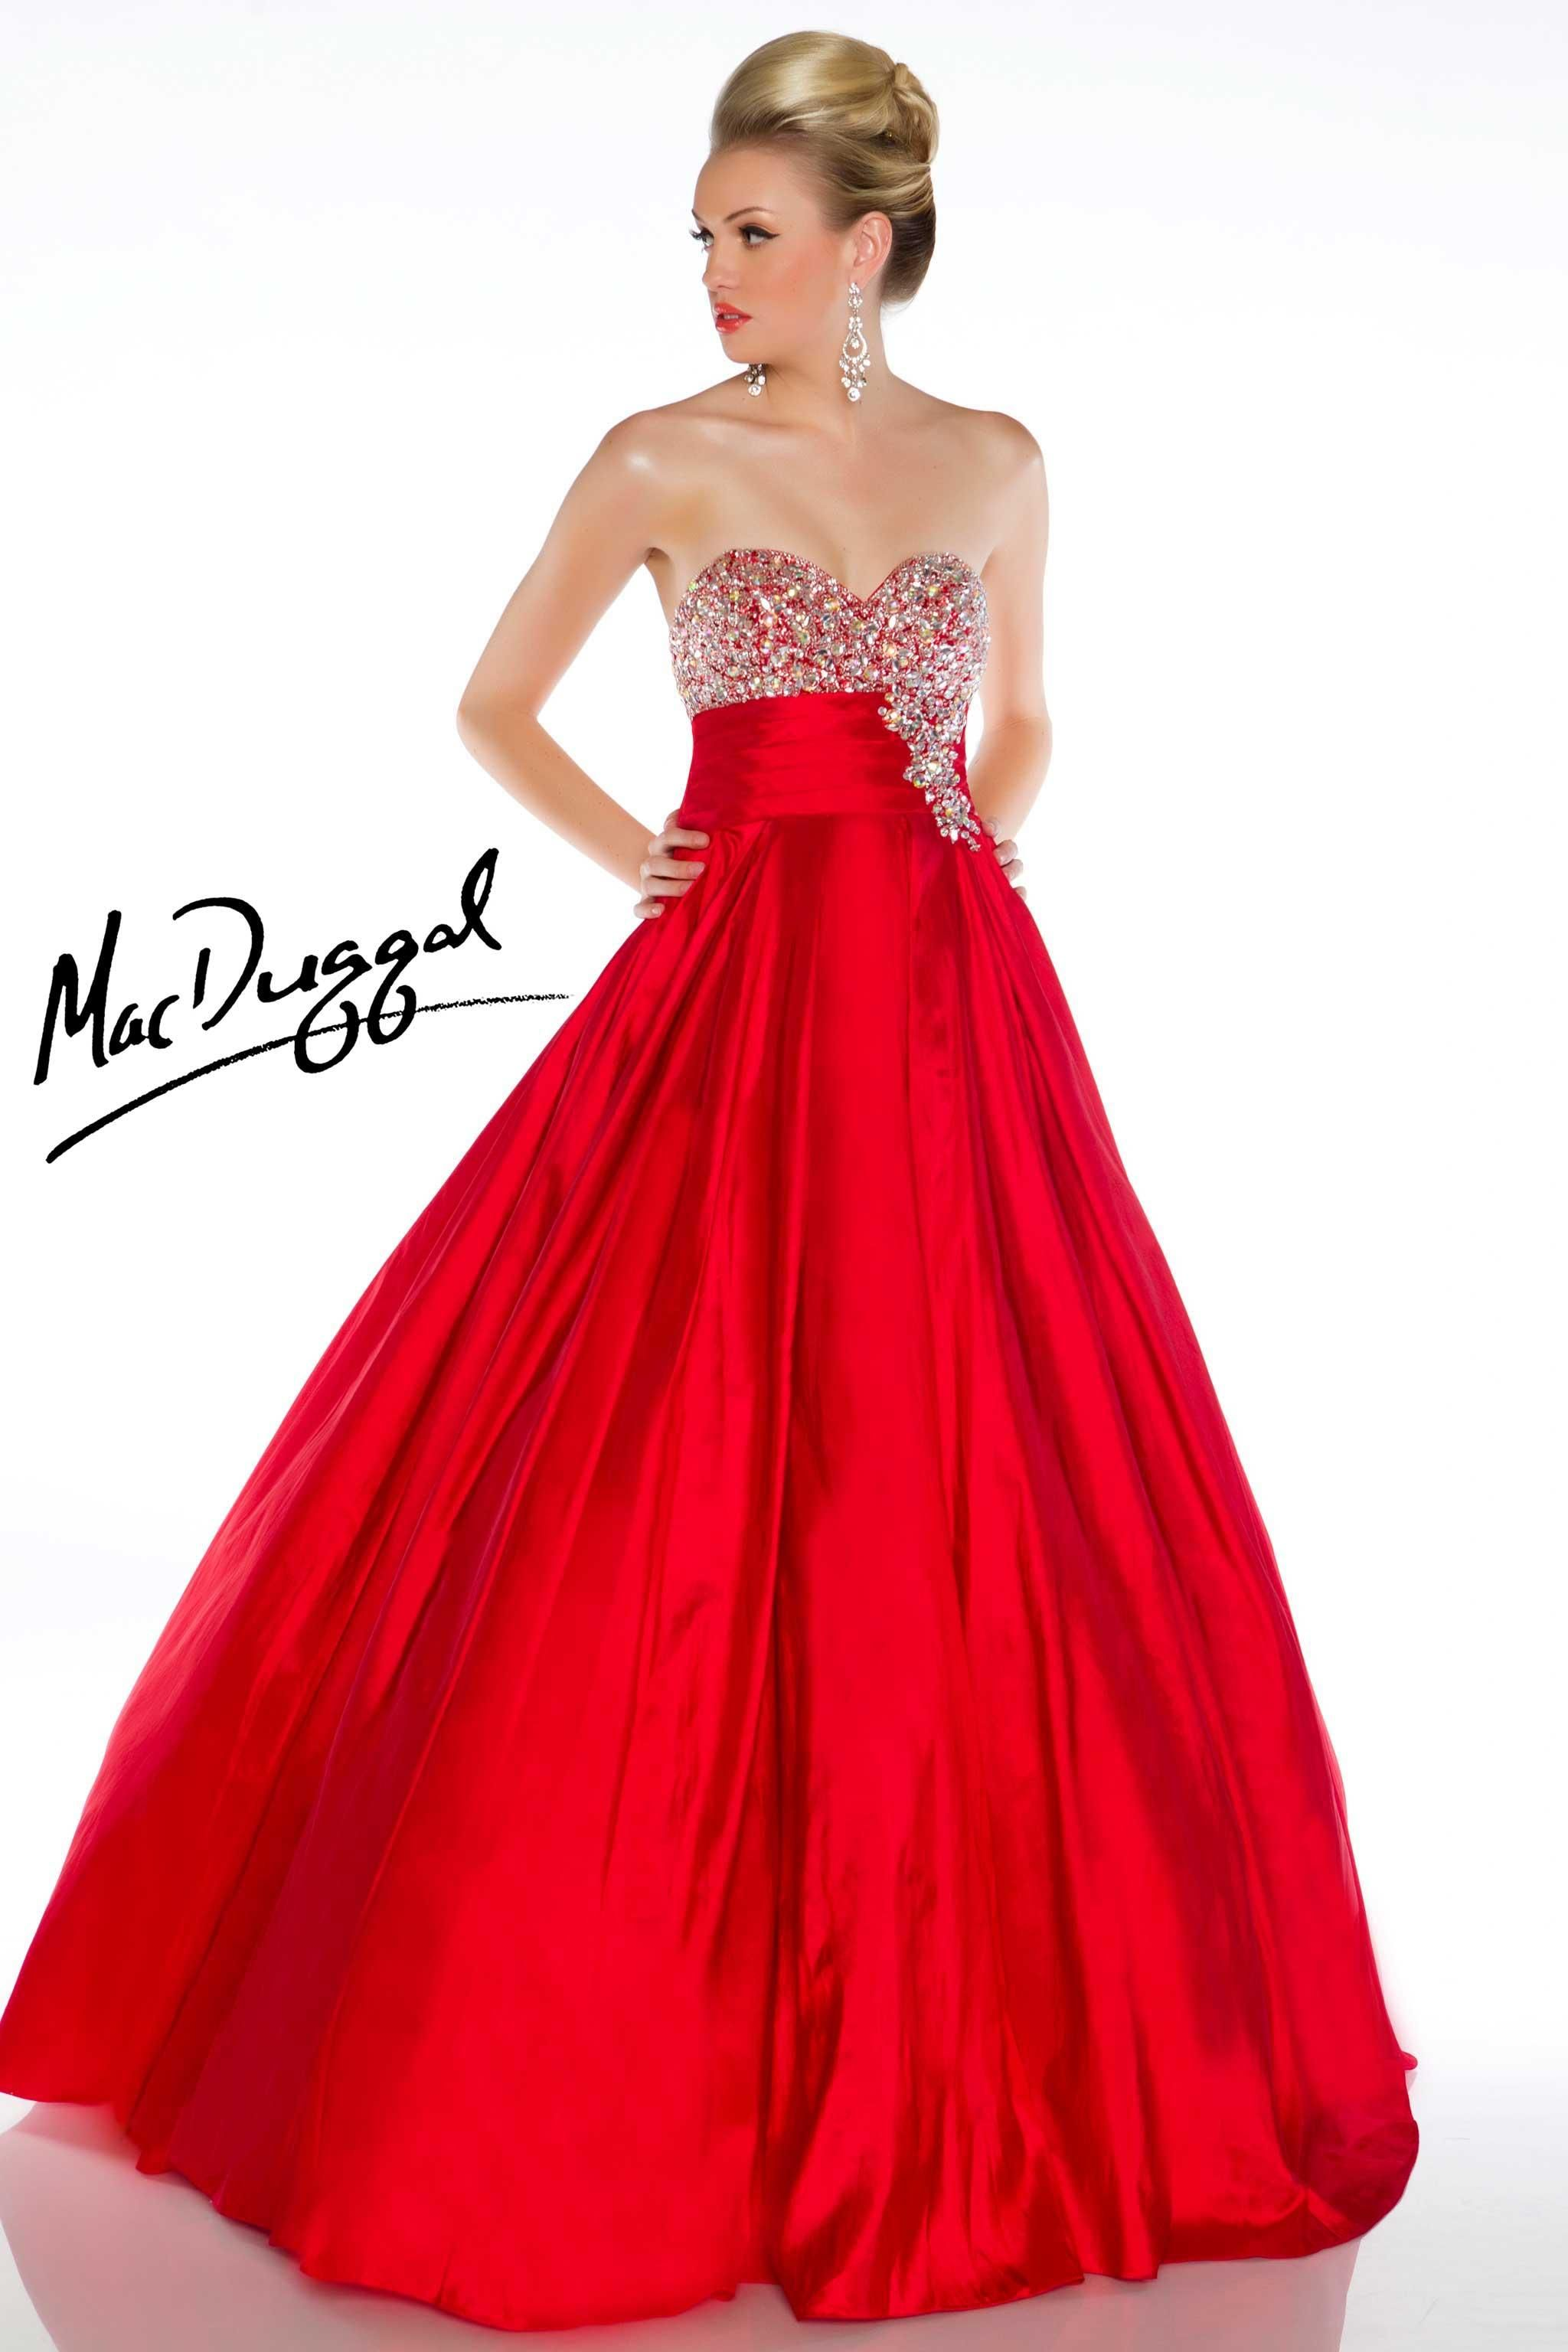 Strapless Red Ball Gown - Mac Duggal | PROM❤ | Pinterest ...